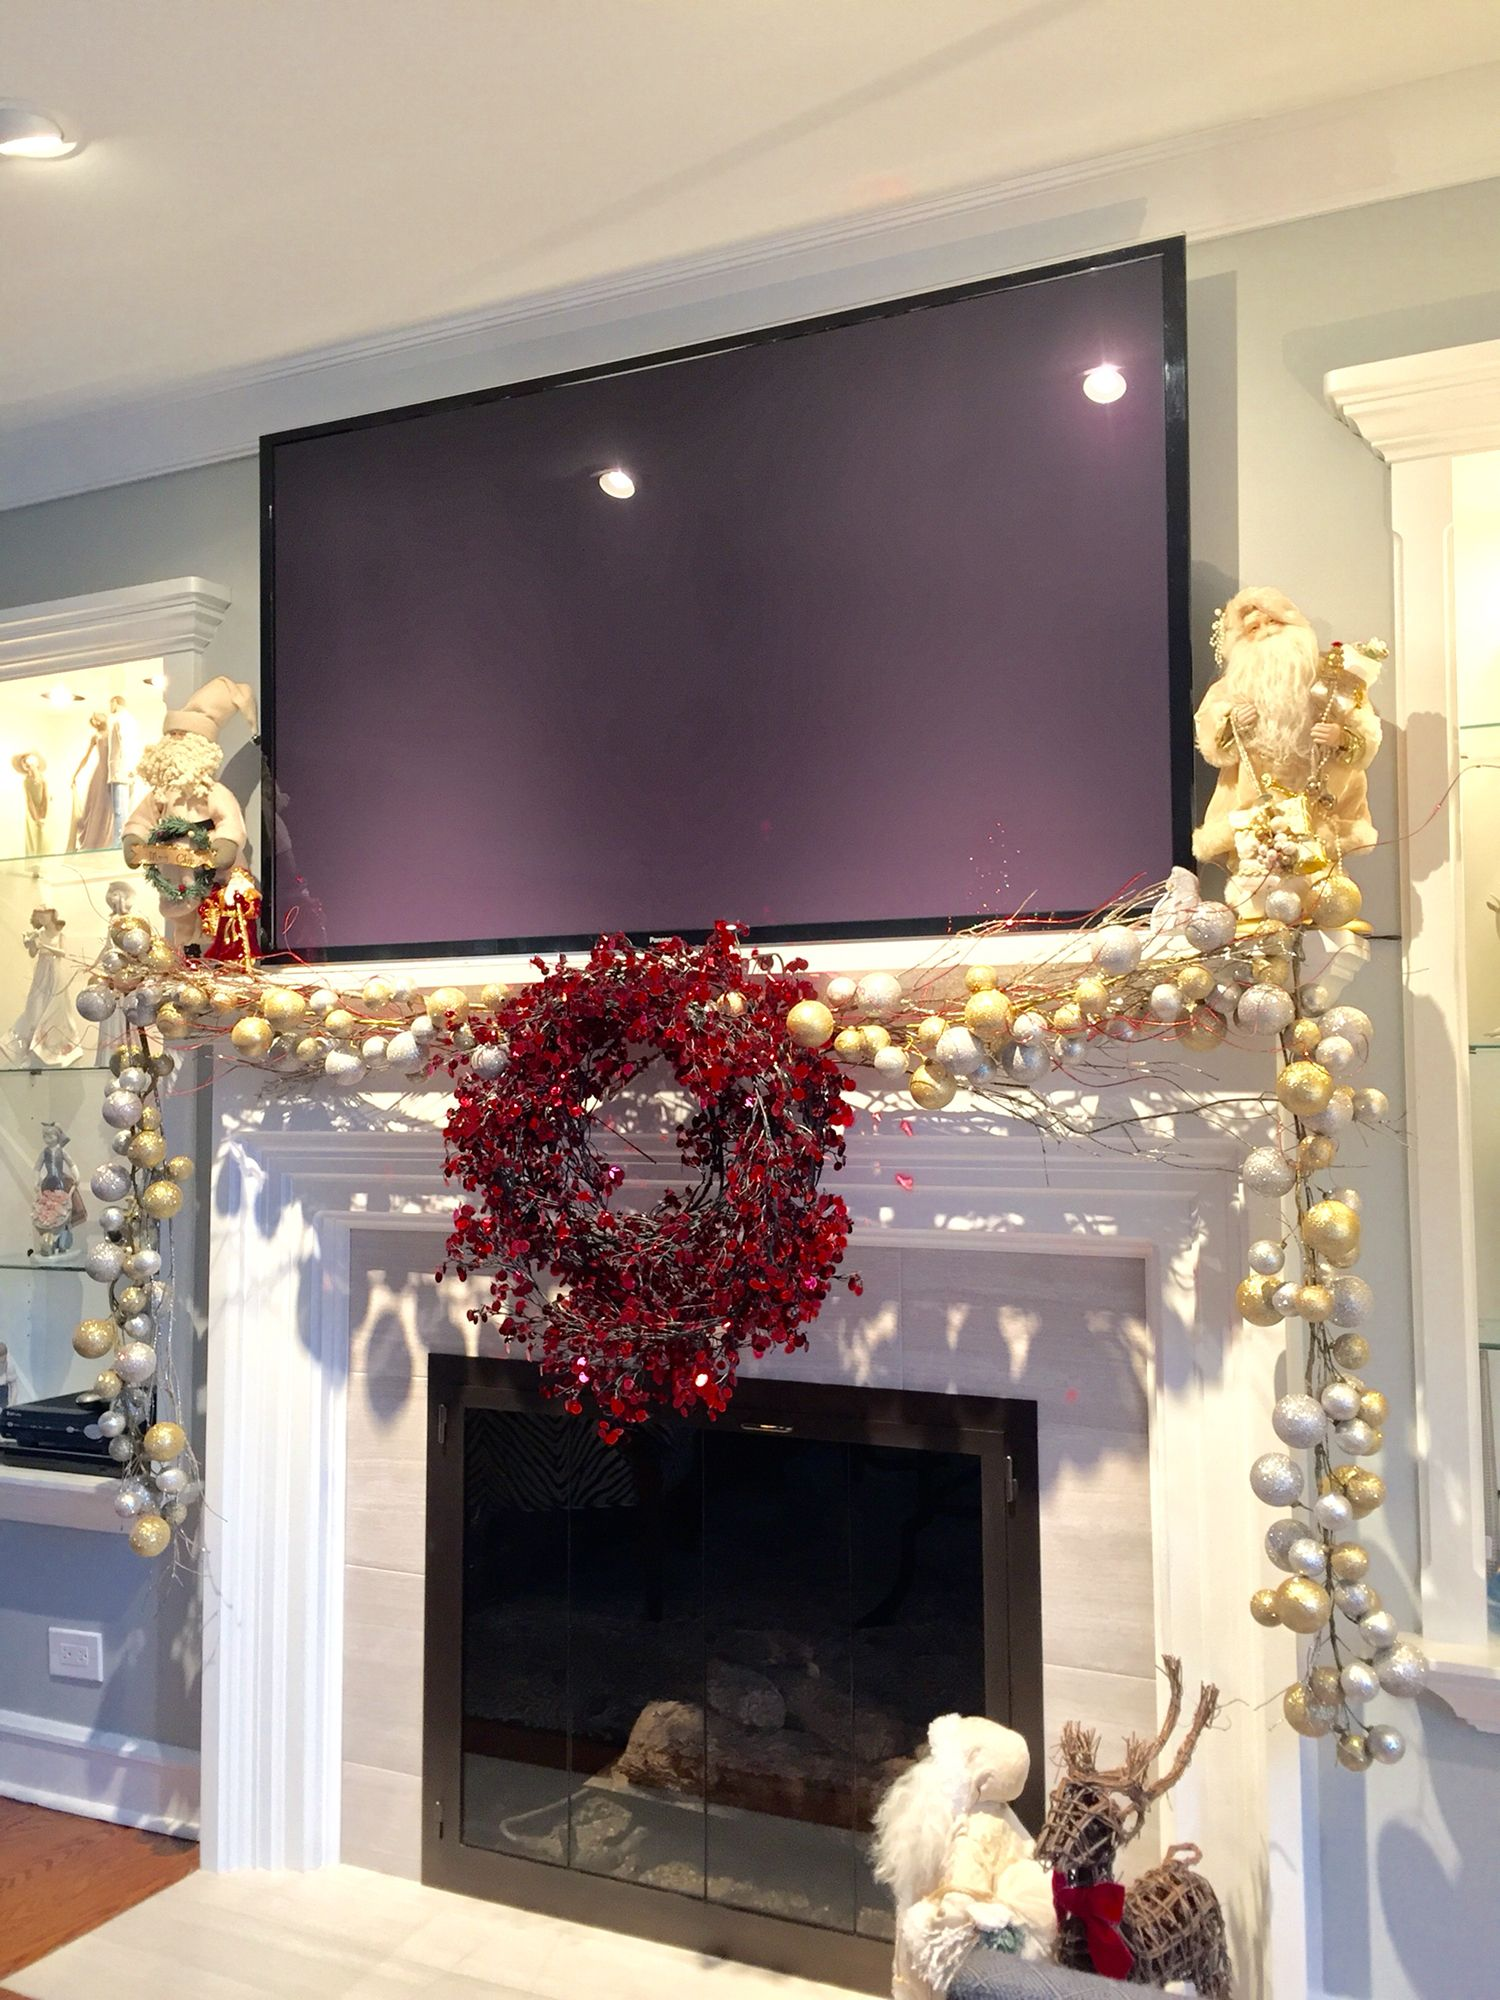 Fireplace Mantel Decor With Tv Mantle Decoration For Christmas With A Big Screen Tv